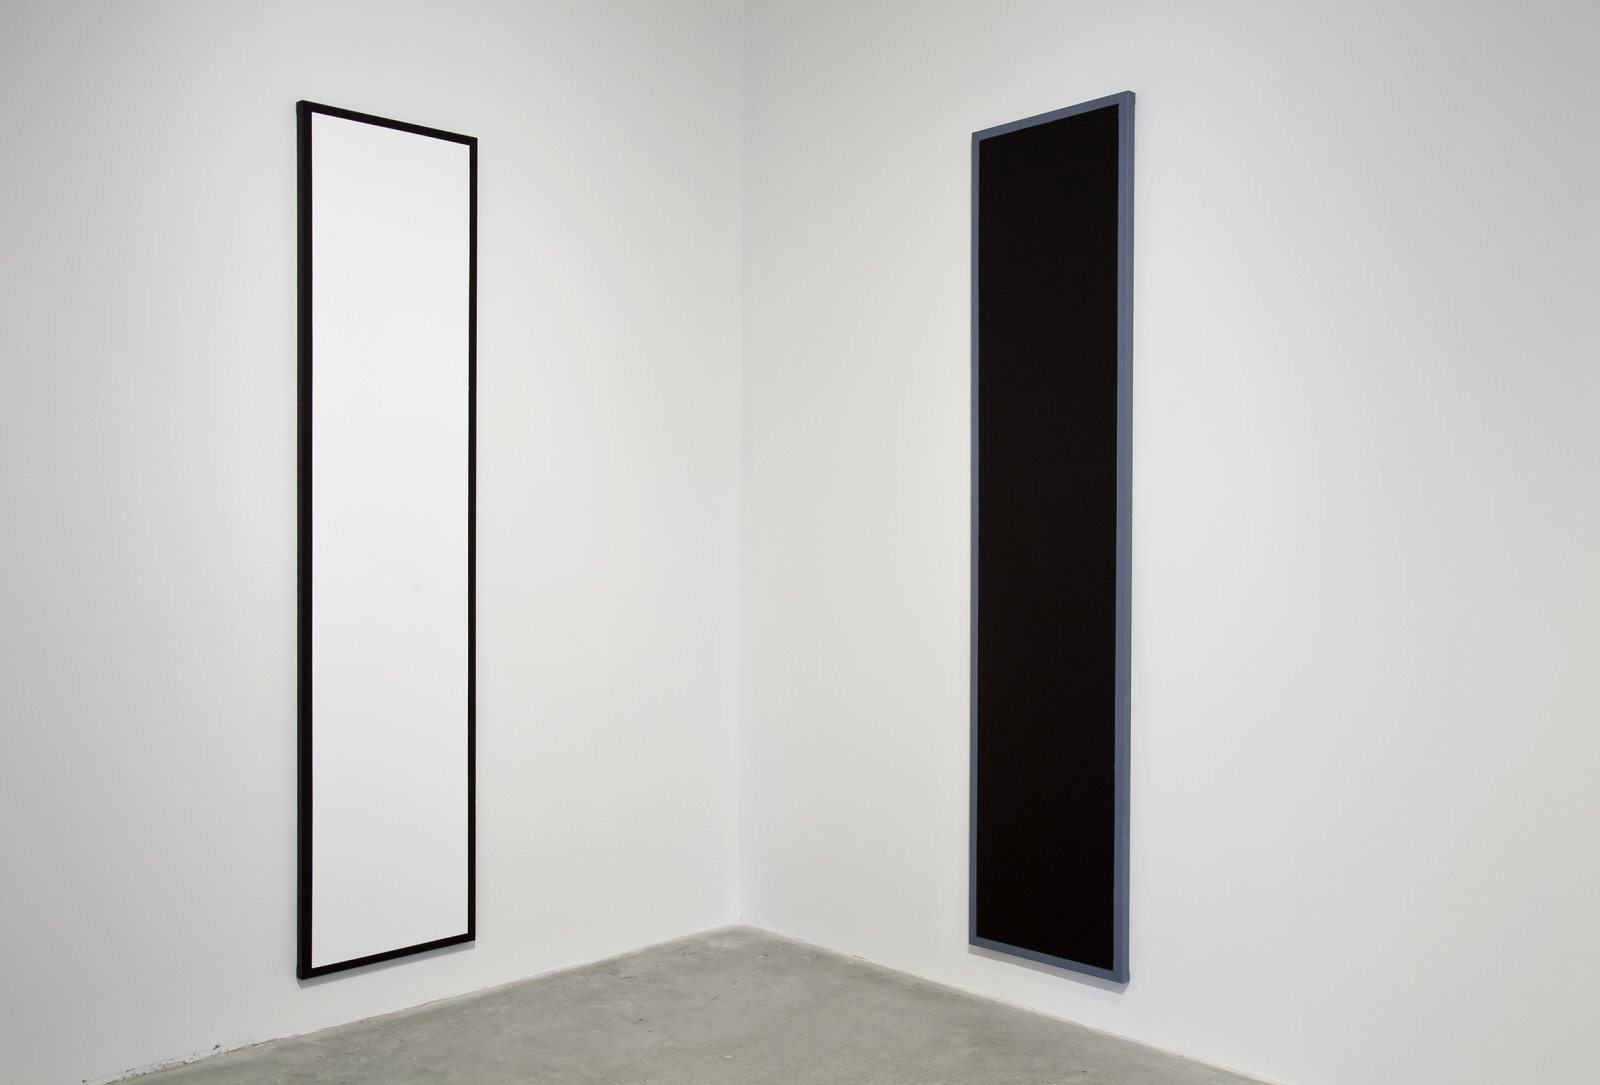 Ian Wallace, installation view, The Economy of the Image, The Power Plant, Toronto, 2010 by Ian Wallace